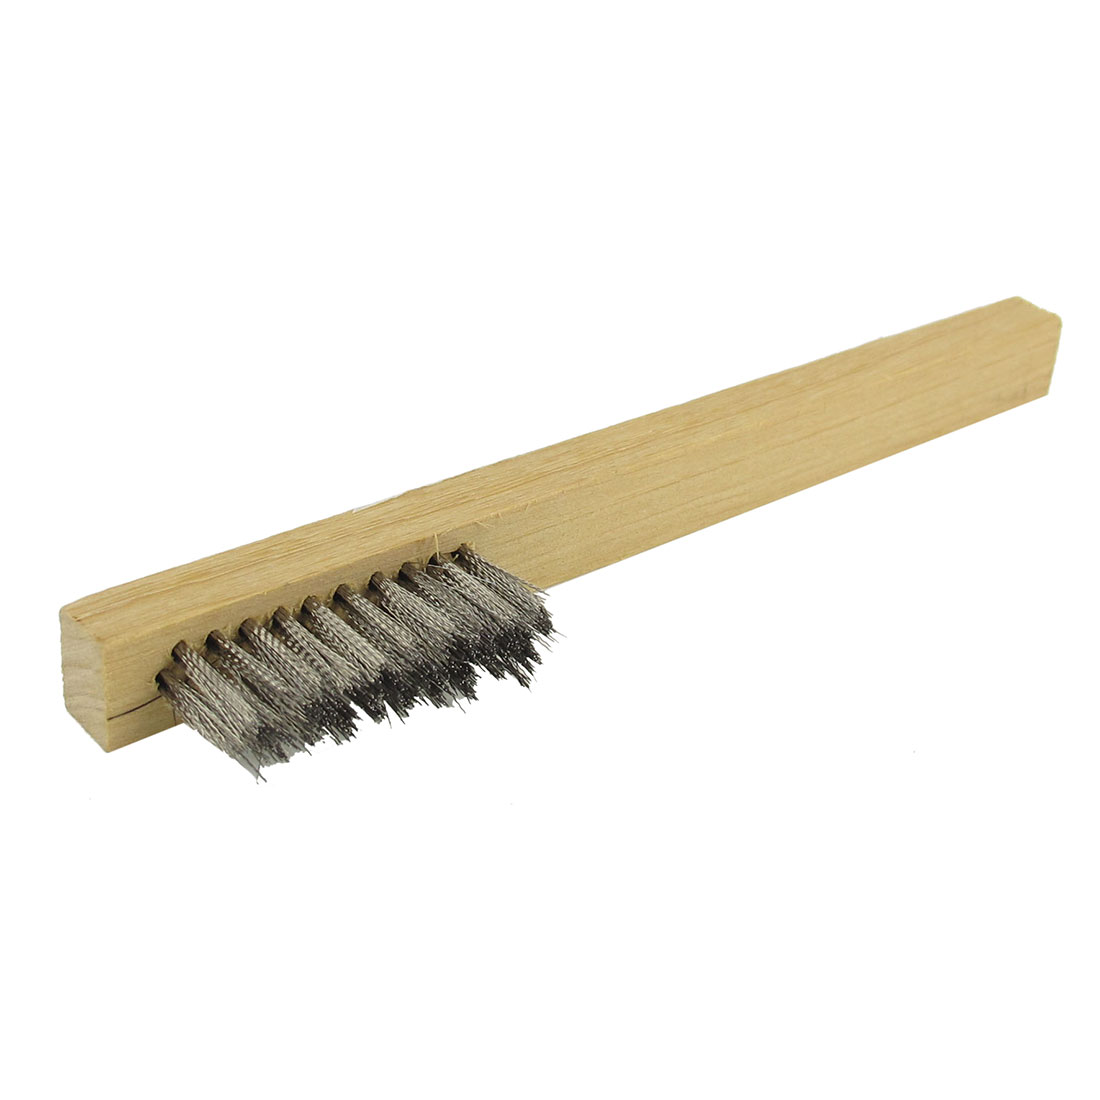 Stainless Steel Bristle Wooden Handle Wire Brush Cleaner